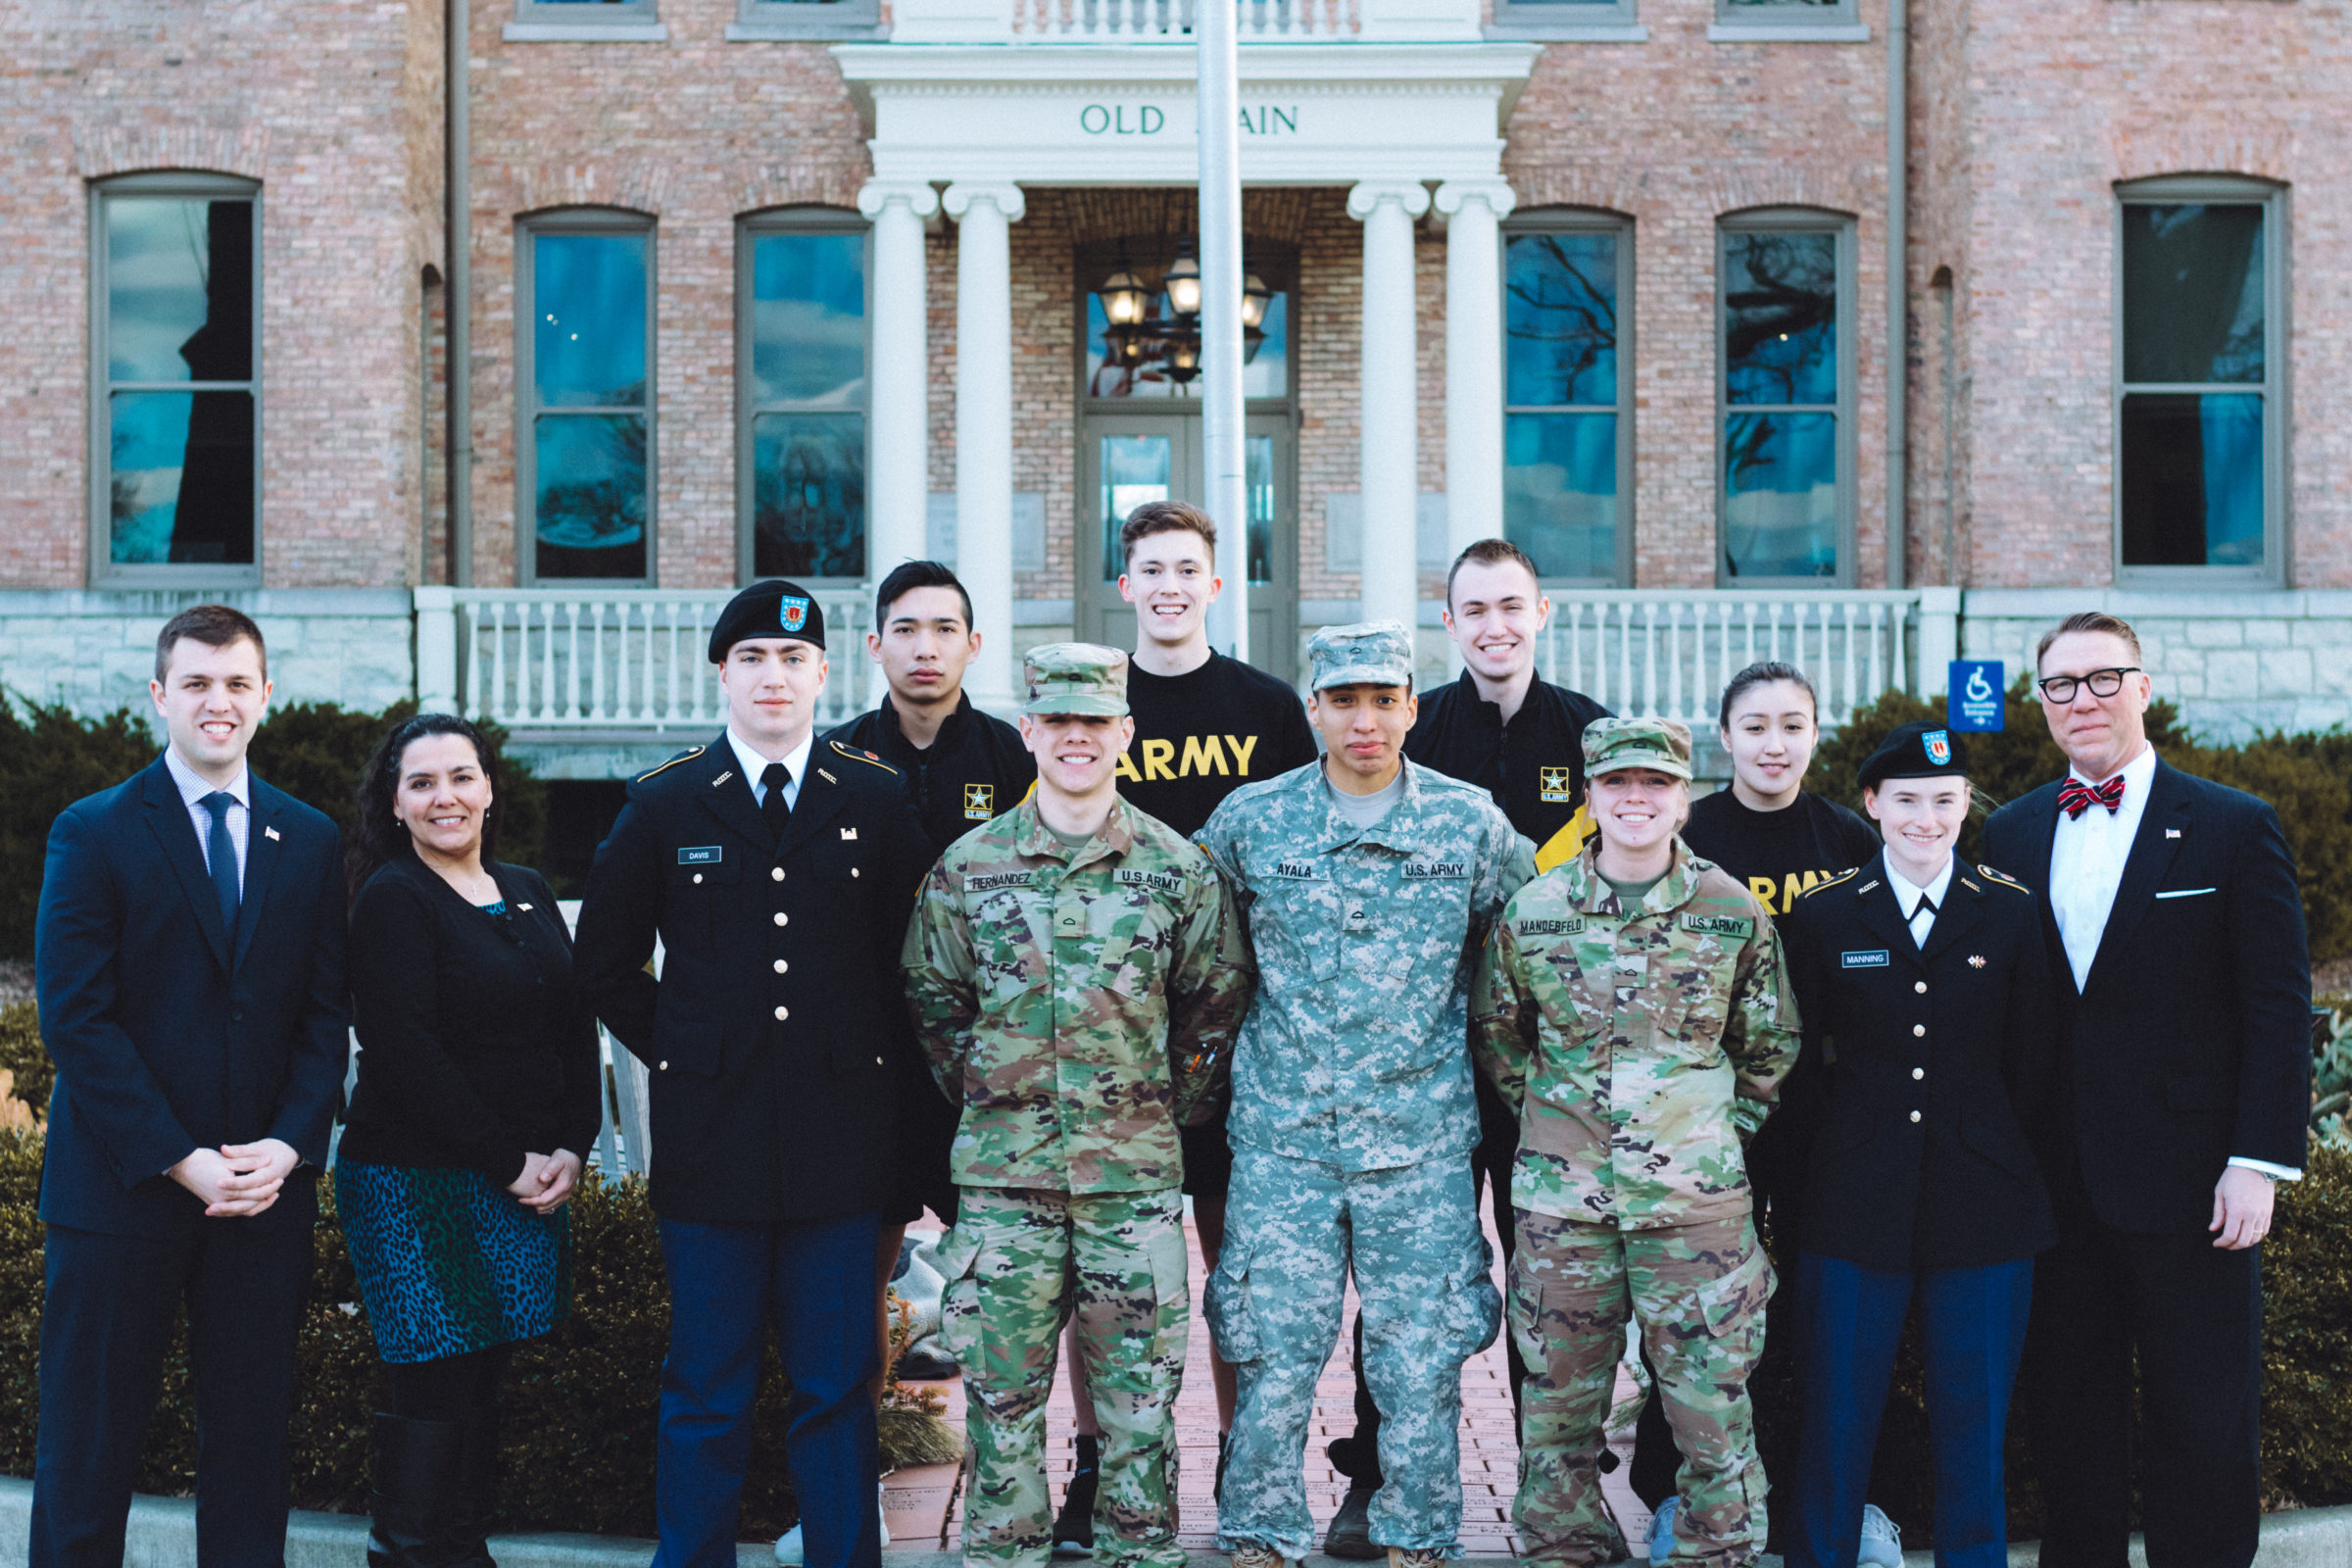 Military and Veteran Students at North Park featured image background